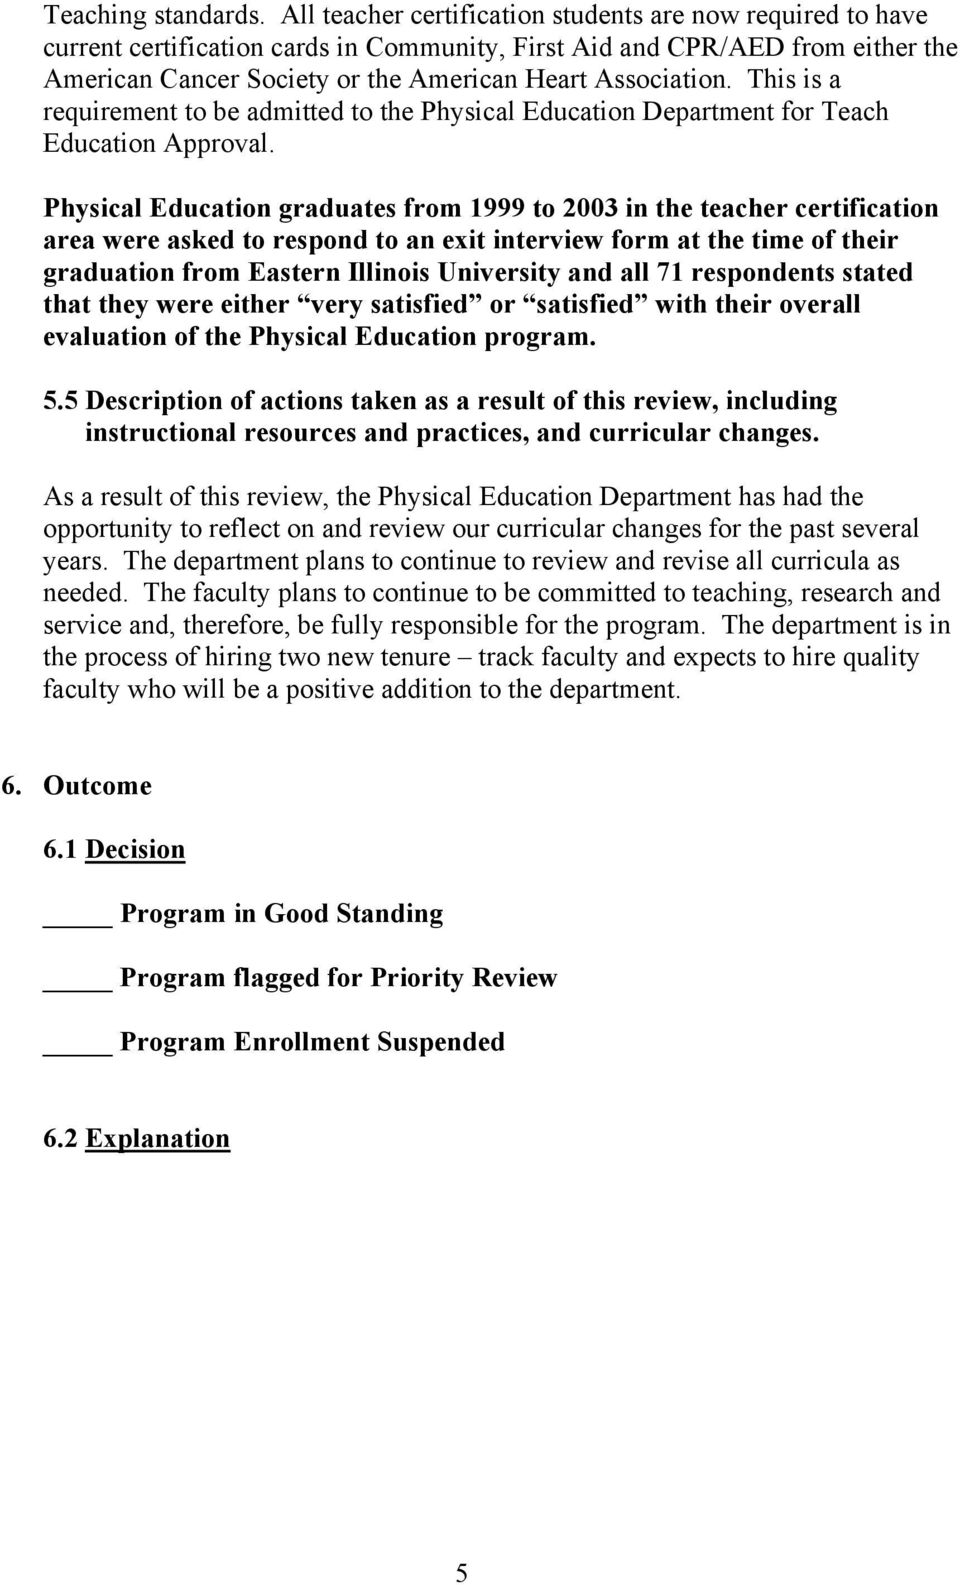 This is a requirement to be admitted to the Physical Education Department for Teach Education Approval.